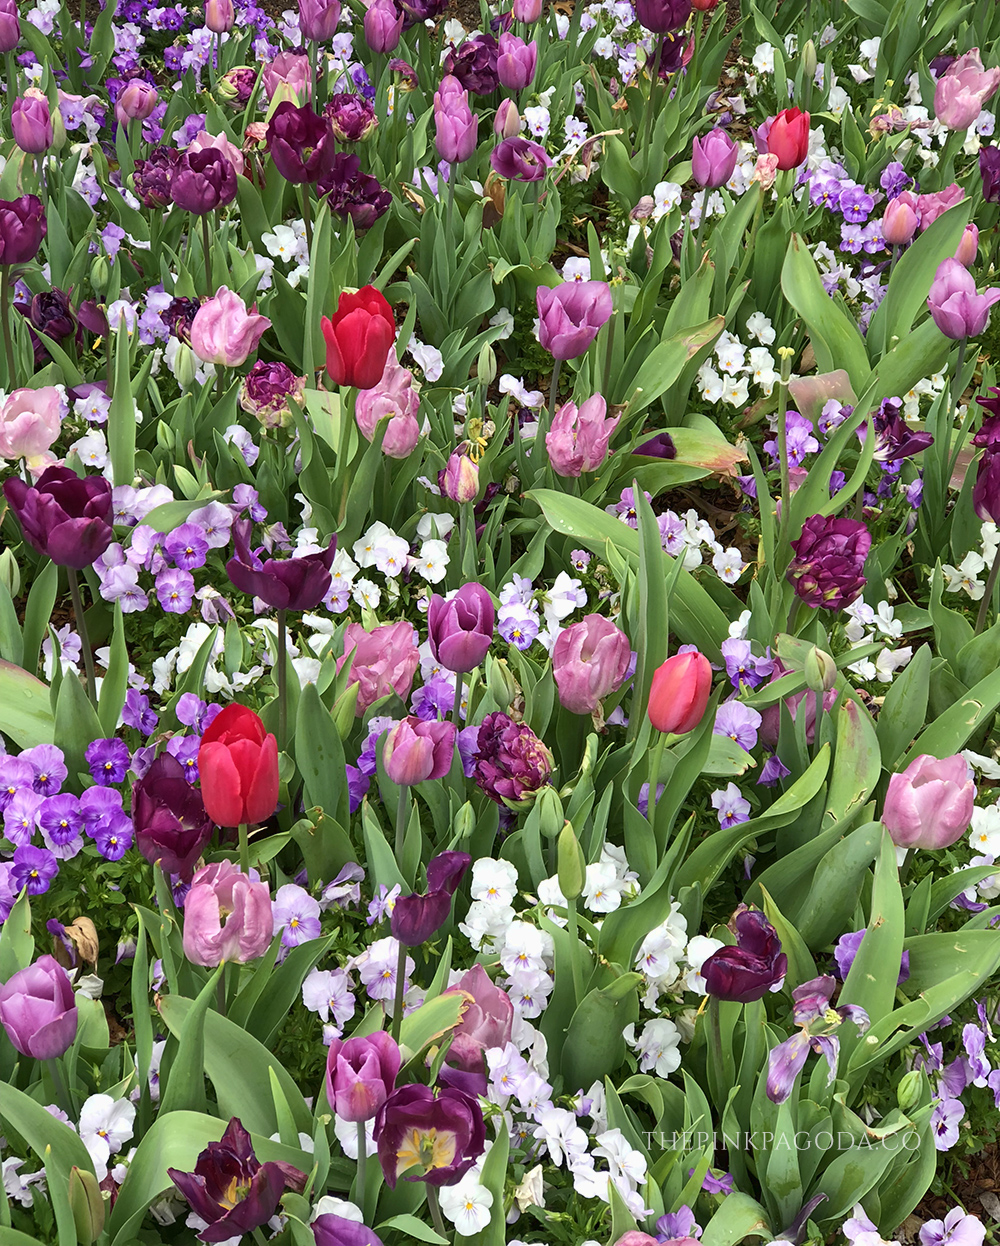 Gorgeous mix of colored tulips at The Dallas Arboretum.